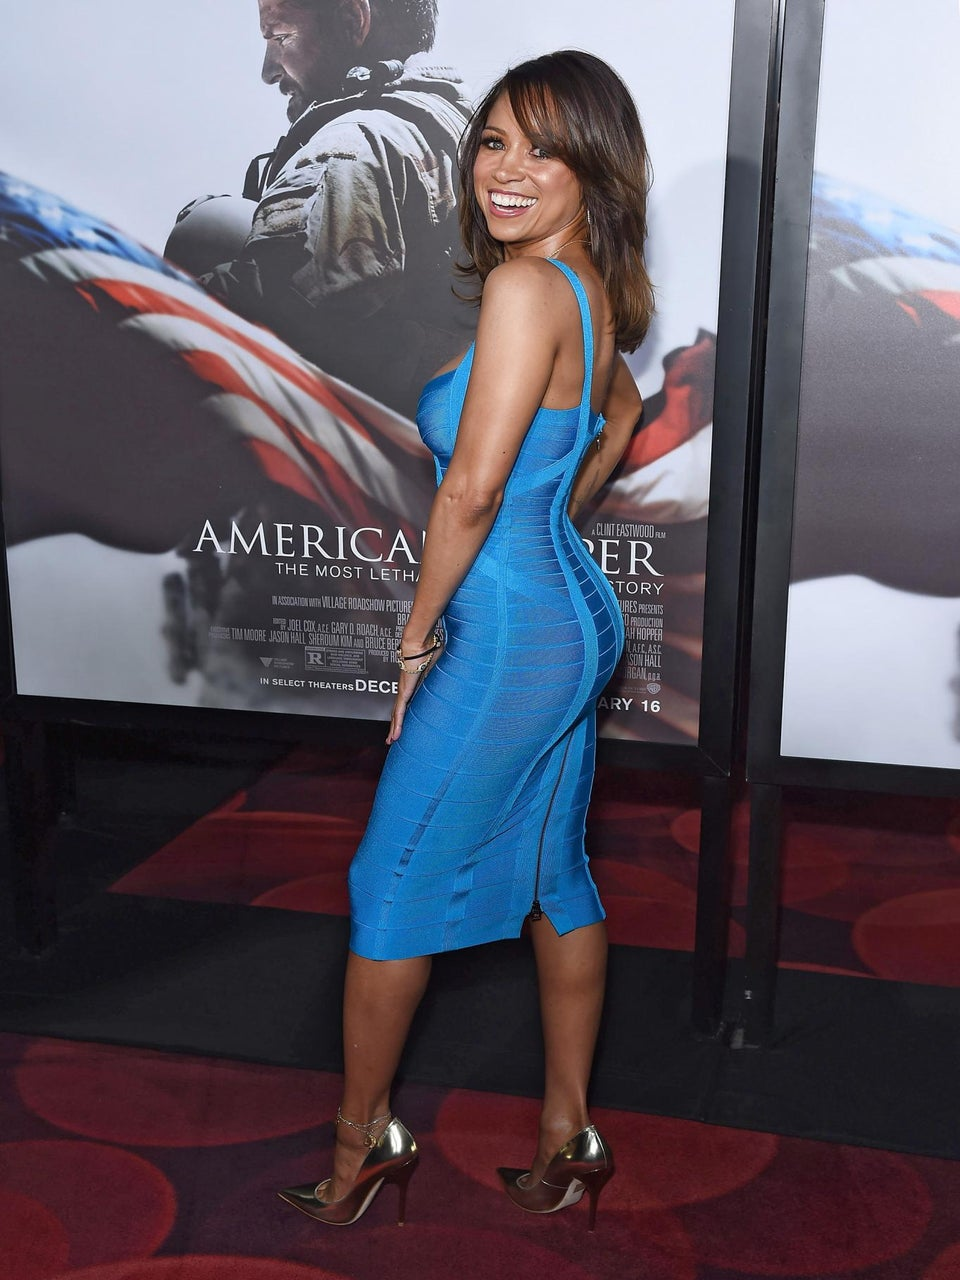 Fox News Suspends Stacey Dash for Using Profanity On Air